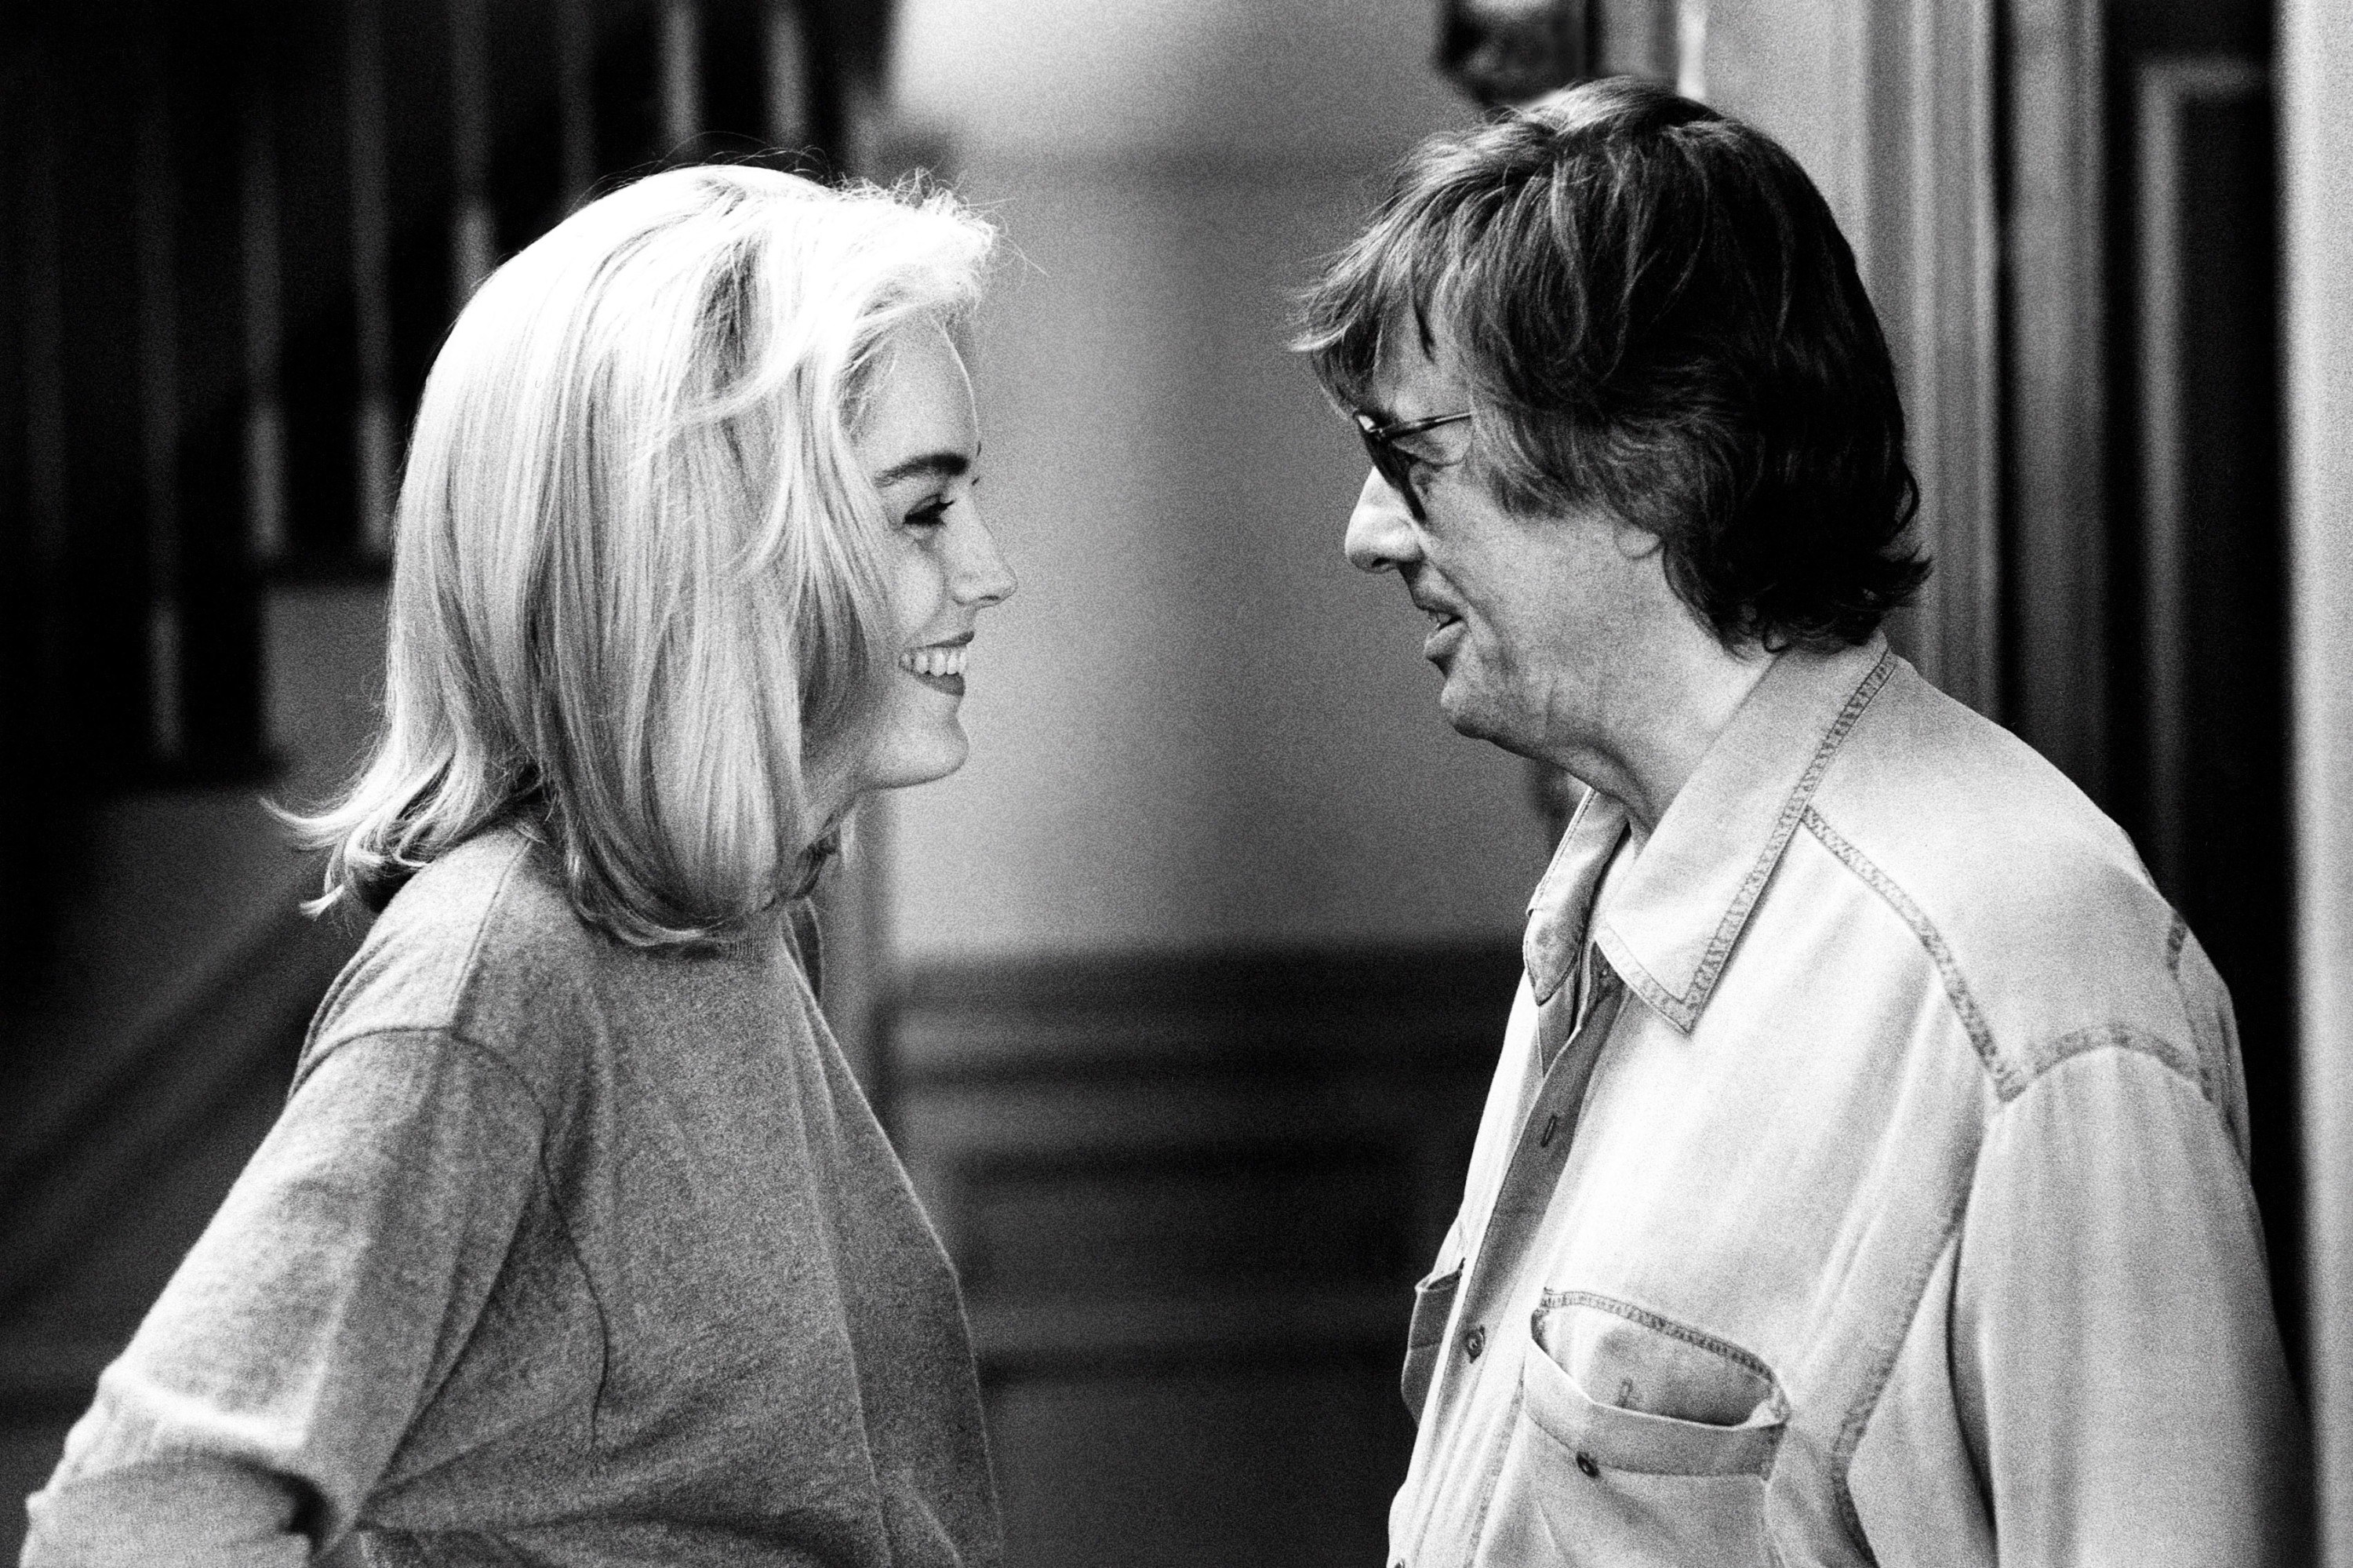 Stone and Paul Verhoeven on the set of Basic Instinct